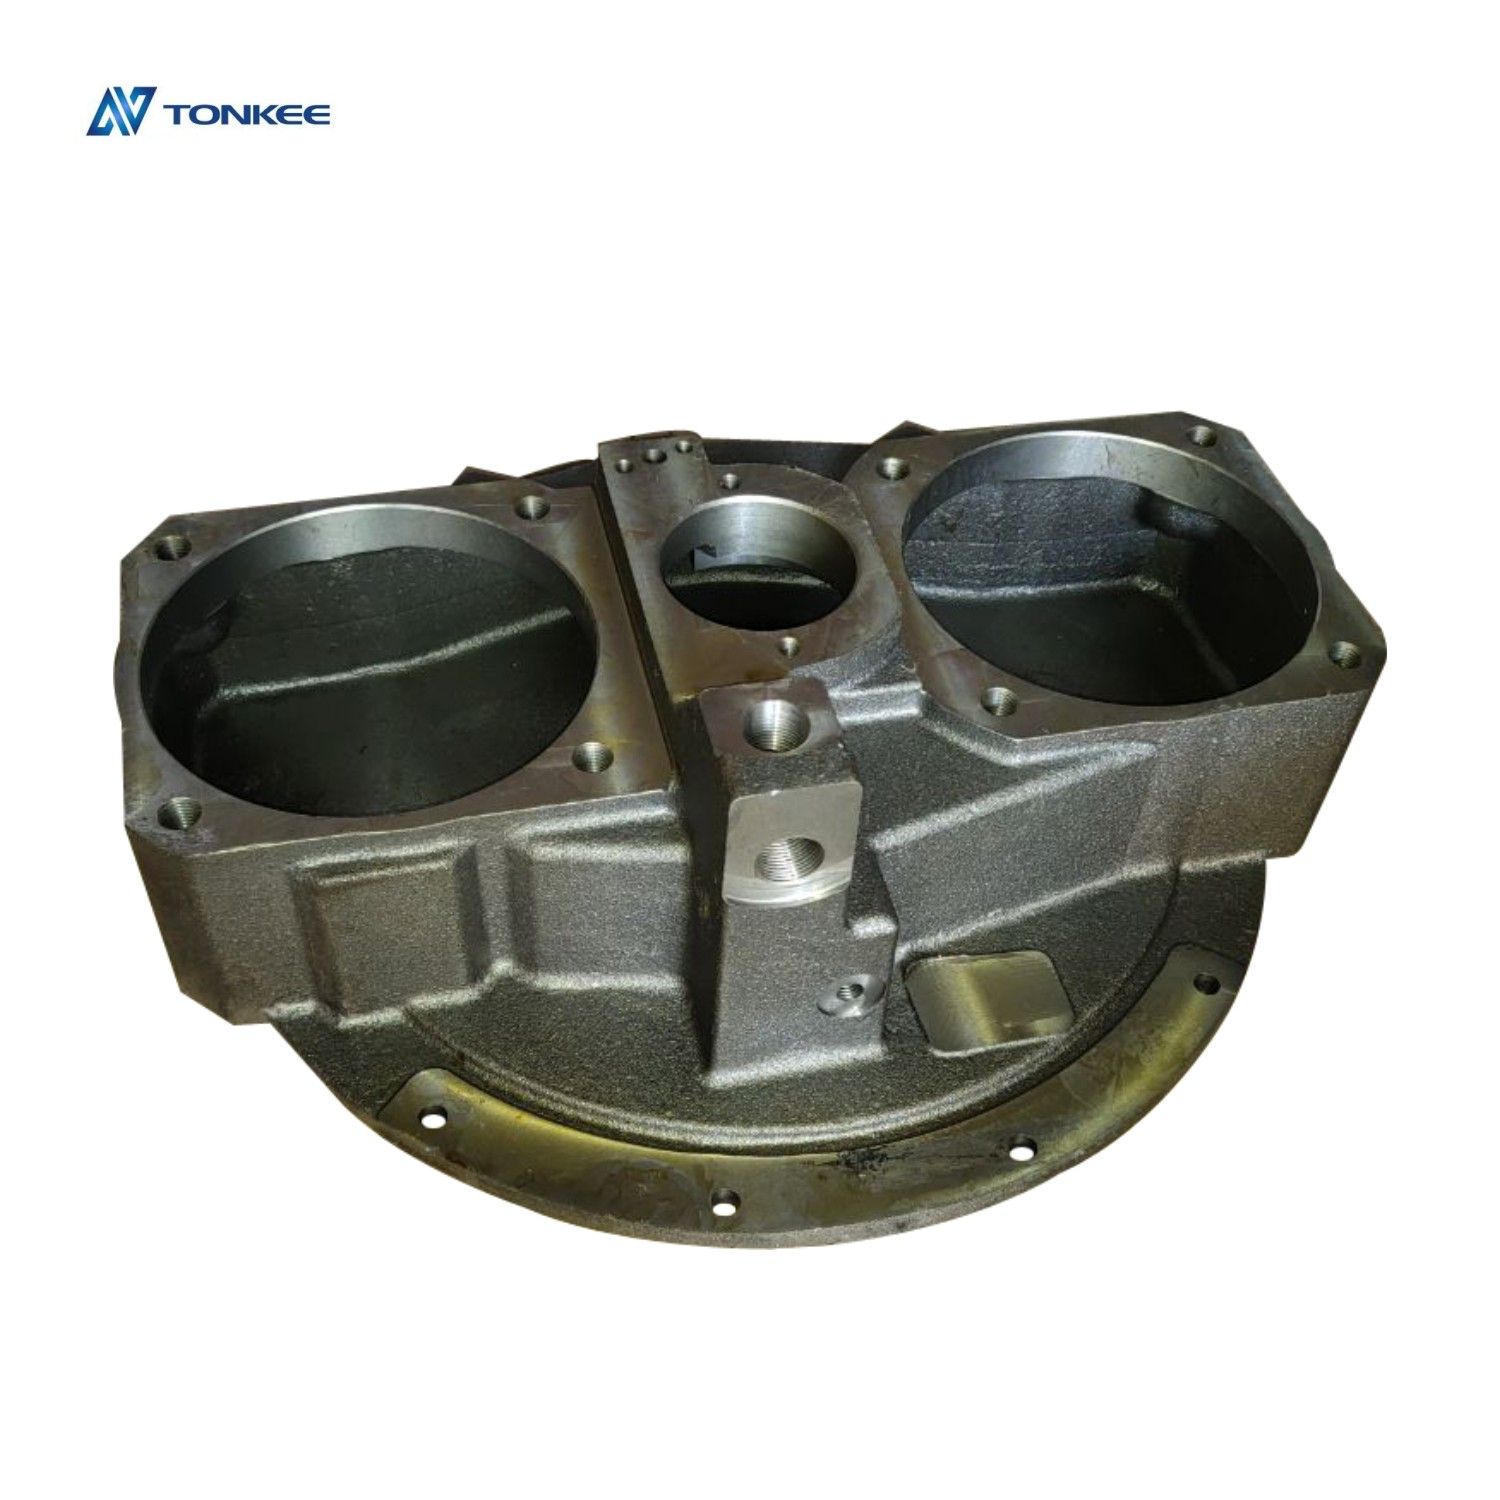 1033049 ZX330-3 ZX300-3 zx350-3 hydraulic main pump housing HPV145 HPV145G HPV145H piston pump housing for HITACHI